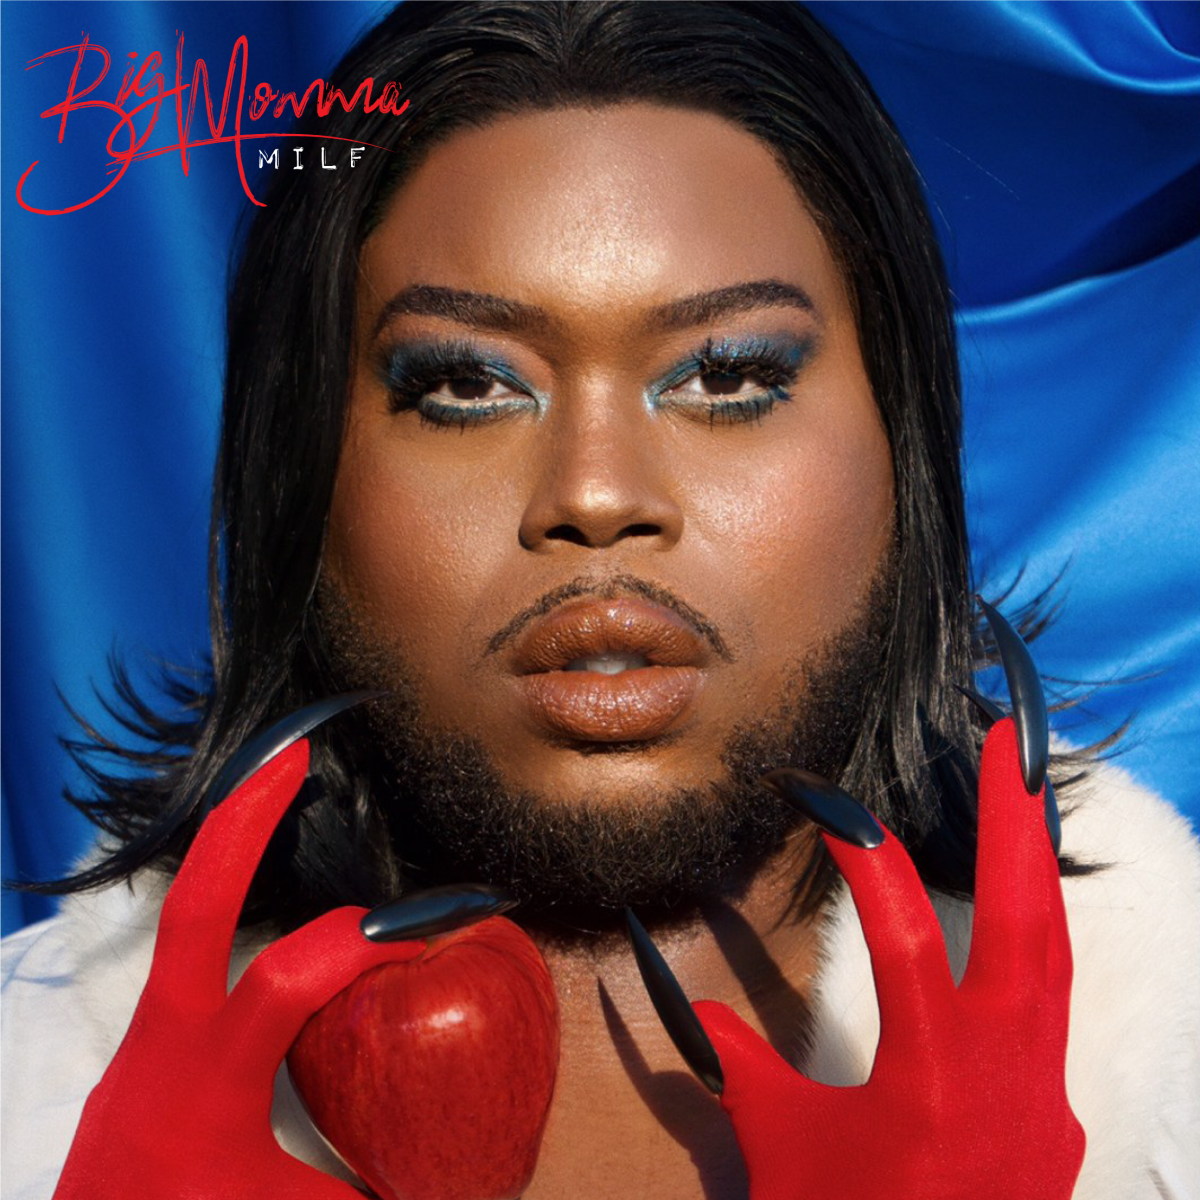 big-momma-album-cover